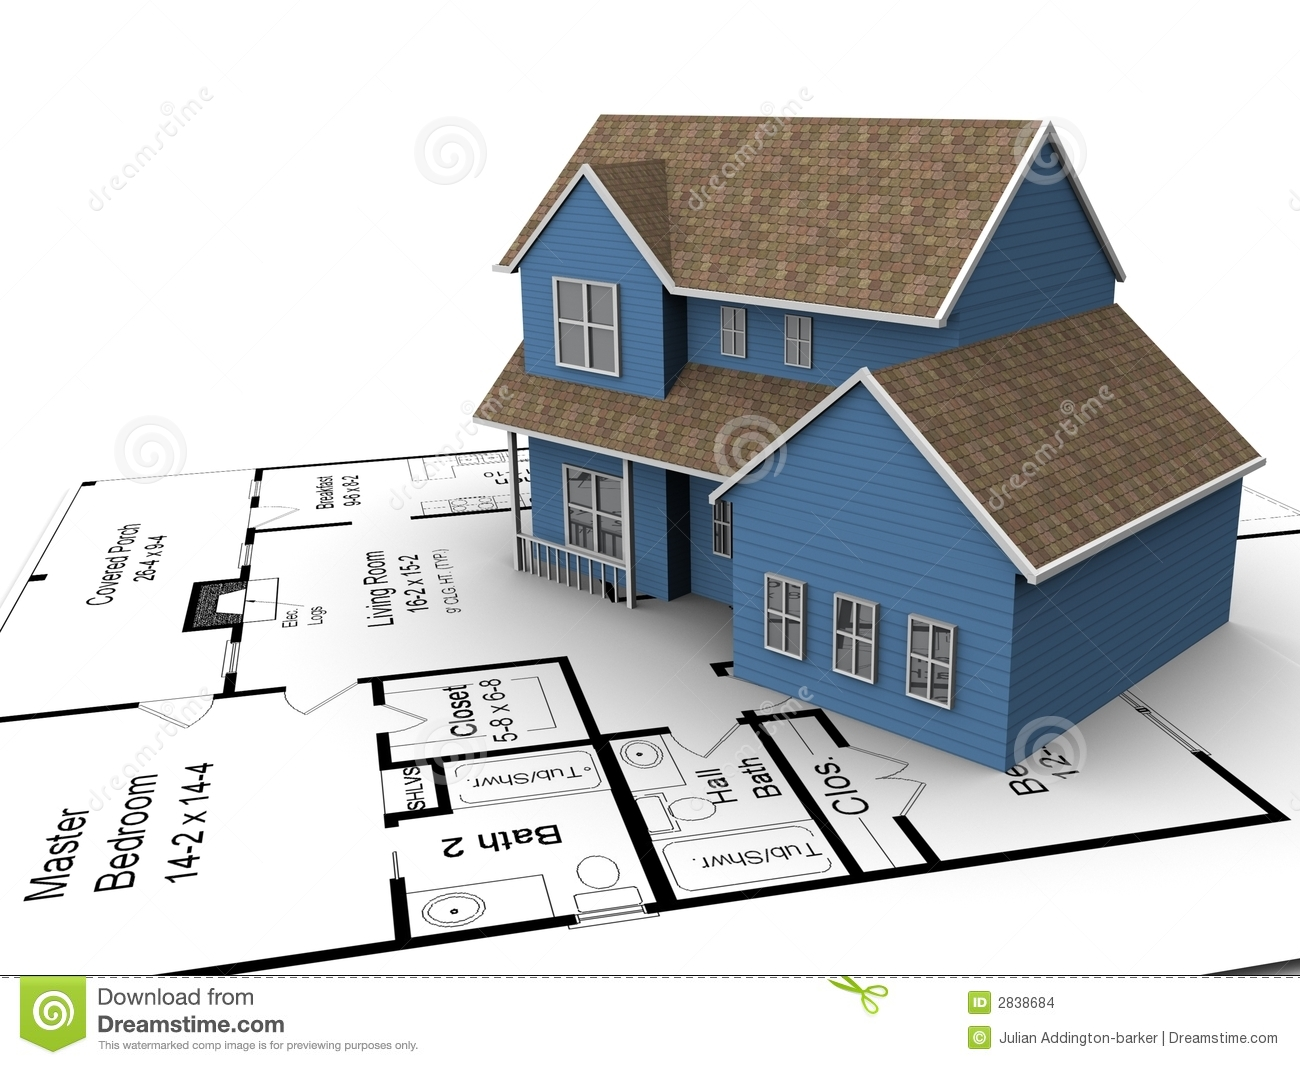 New house plans stock illustration image of design for New building design